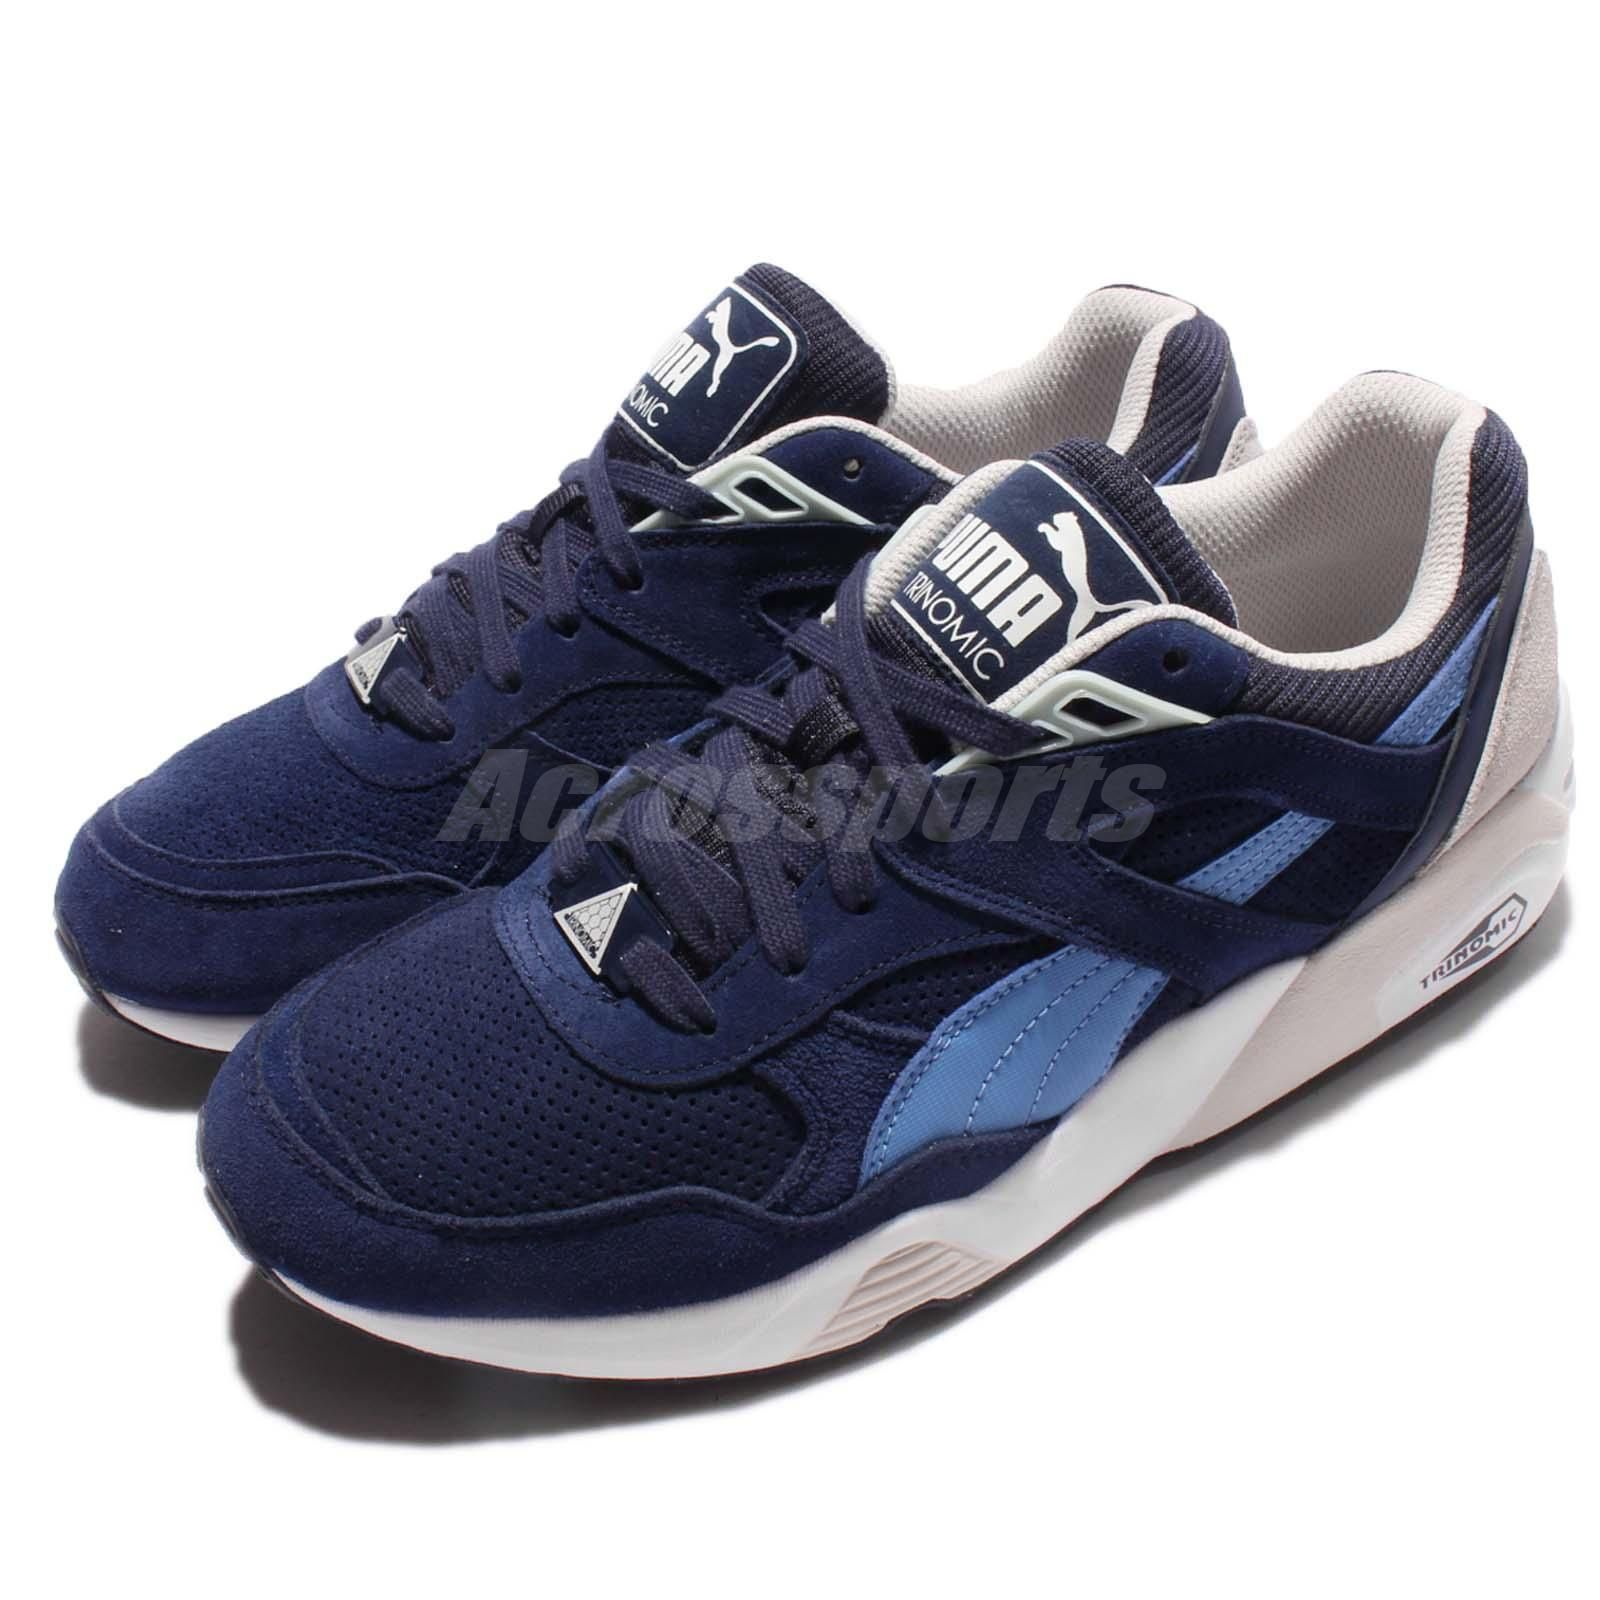 Puma R698 Remaster Blue Navy White Trinomic Men Running Shoes Sneakers 361418 02